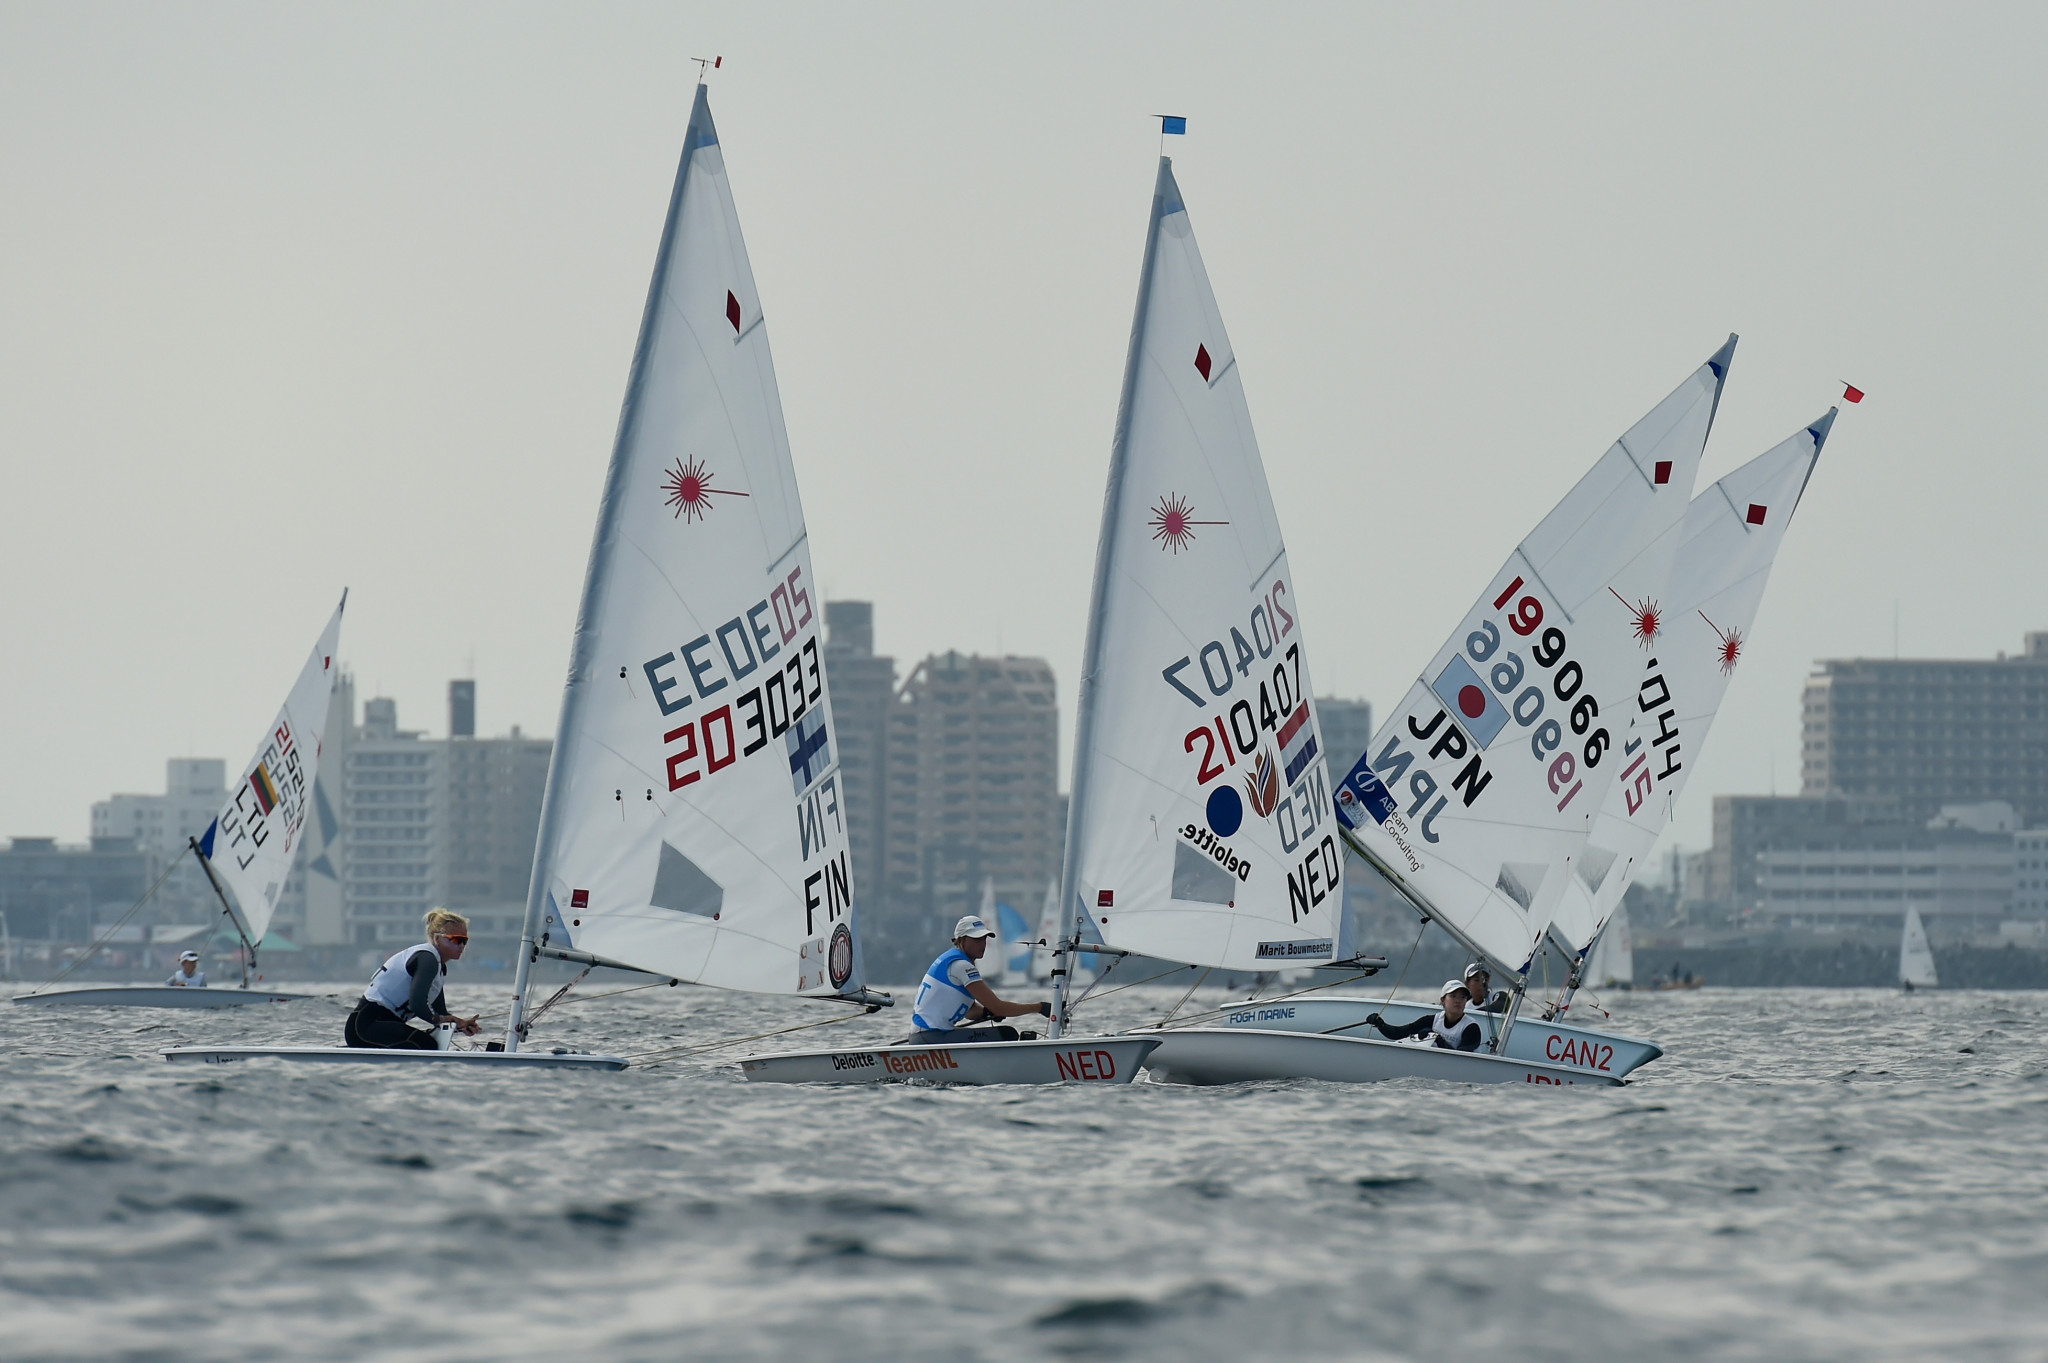 A total of 350 sailors are expected to compete in Enoshima in Japan at this year's rescheduled Olympic Games ©Getty Images